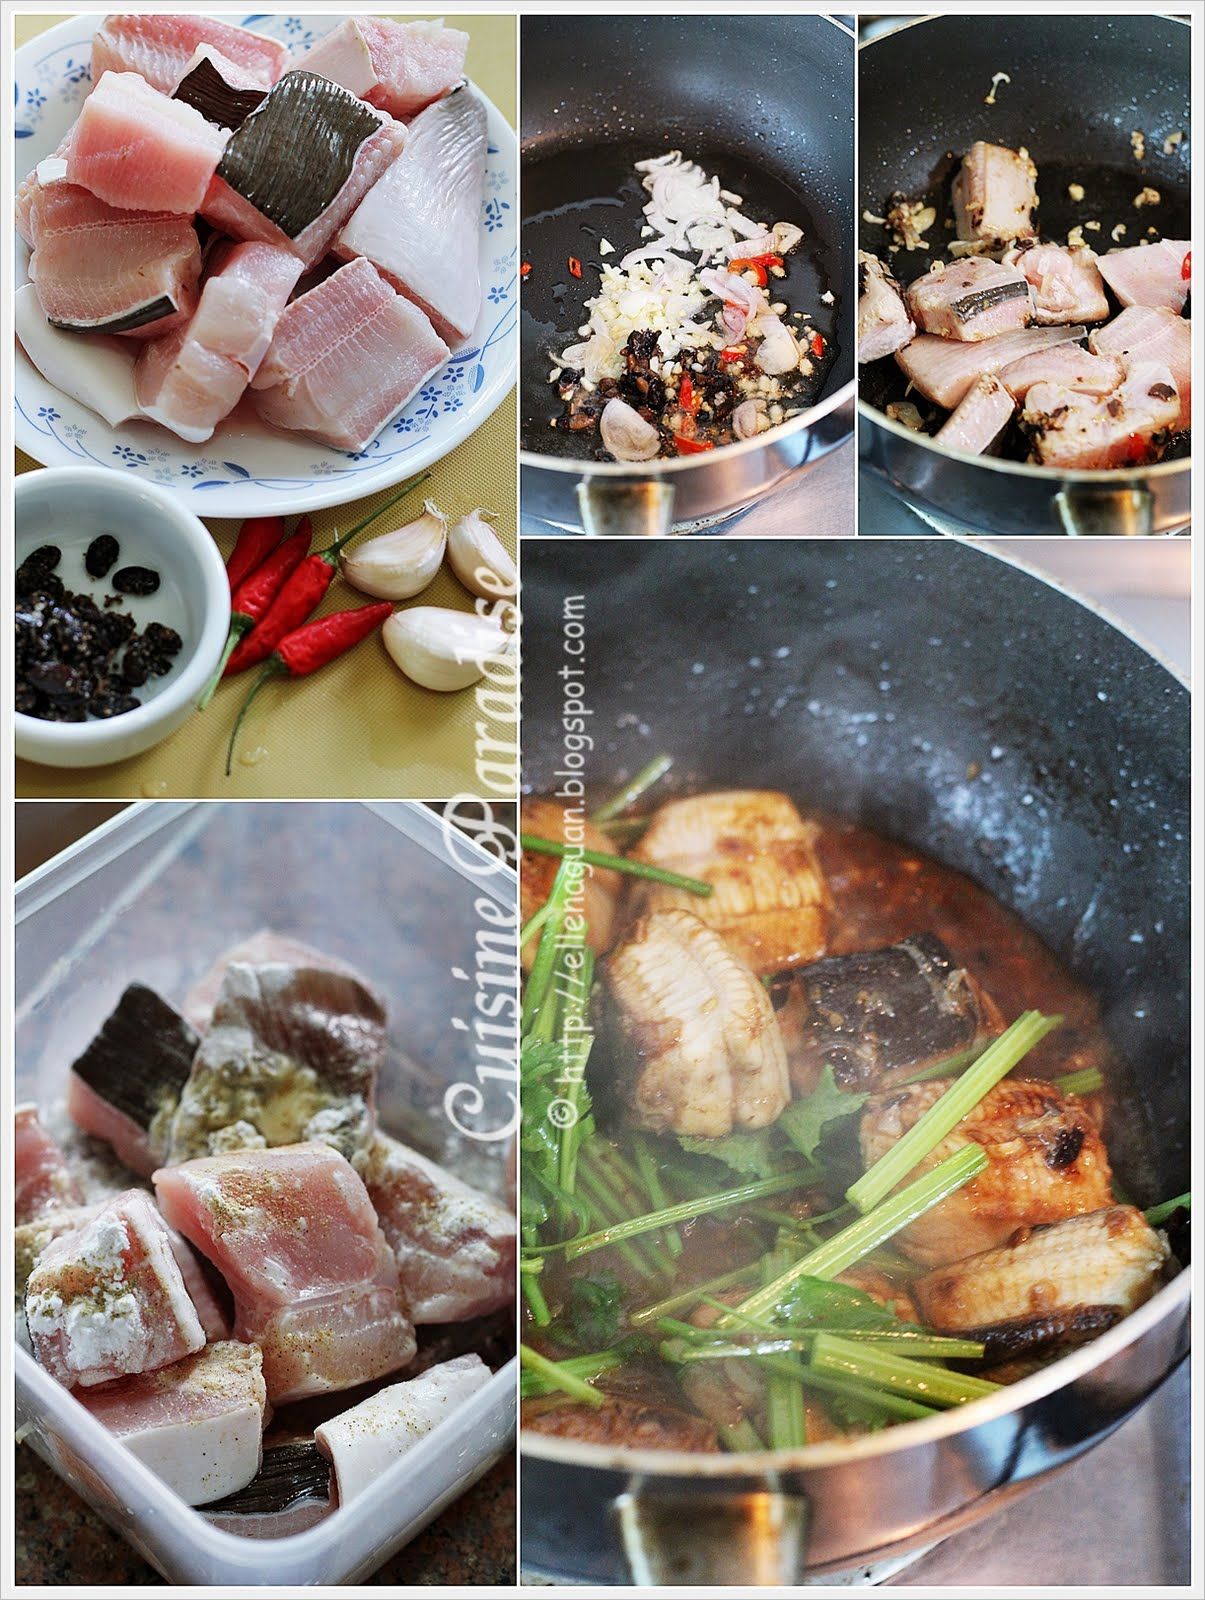 Cuisine paradise singapore food blog recipes reviews and travel can be consider as one of the cheapest fish in the market but some people still hesitate to buy it due to its rather fishy smell even after cooking forumfinder Choice Image